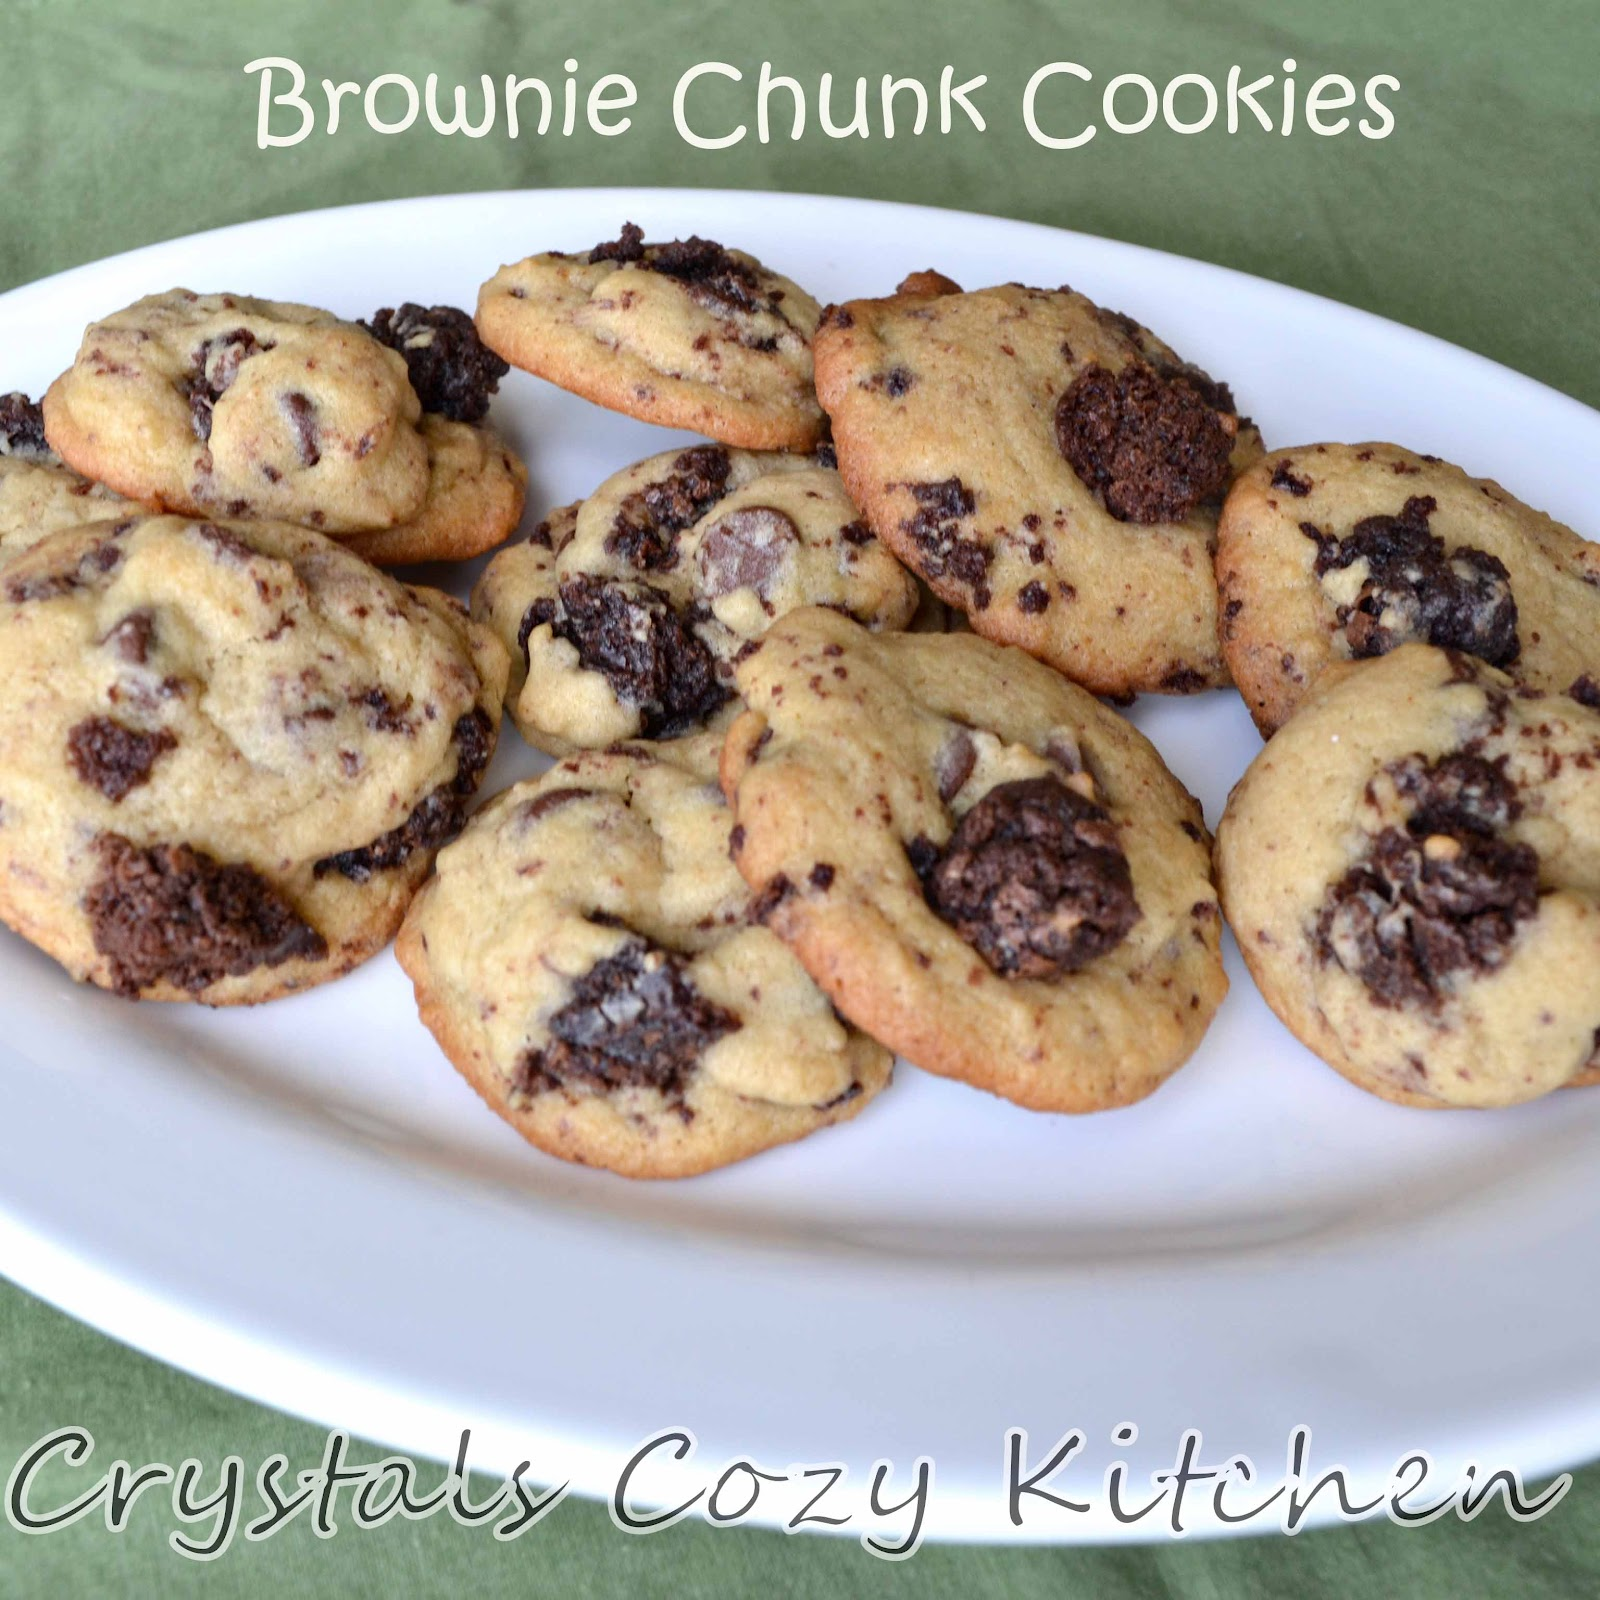 Brownie Chunk And Chocolate Chip Cookies Recipe — Dishmaps